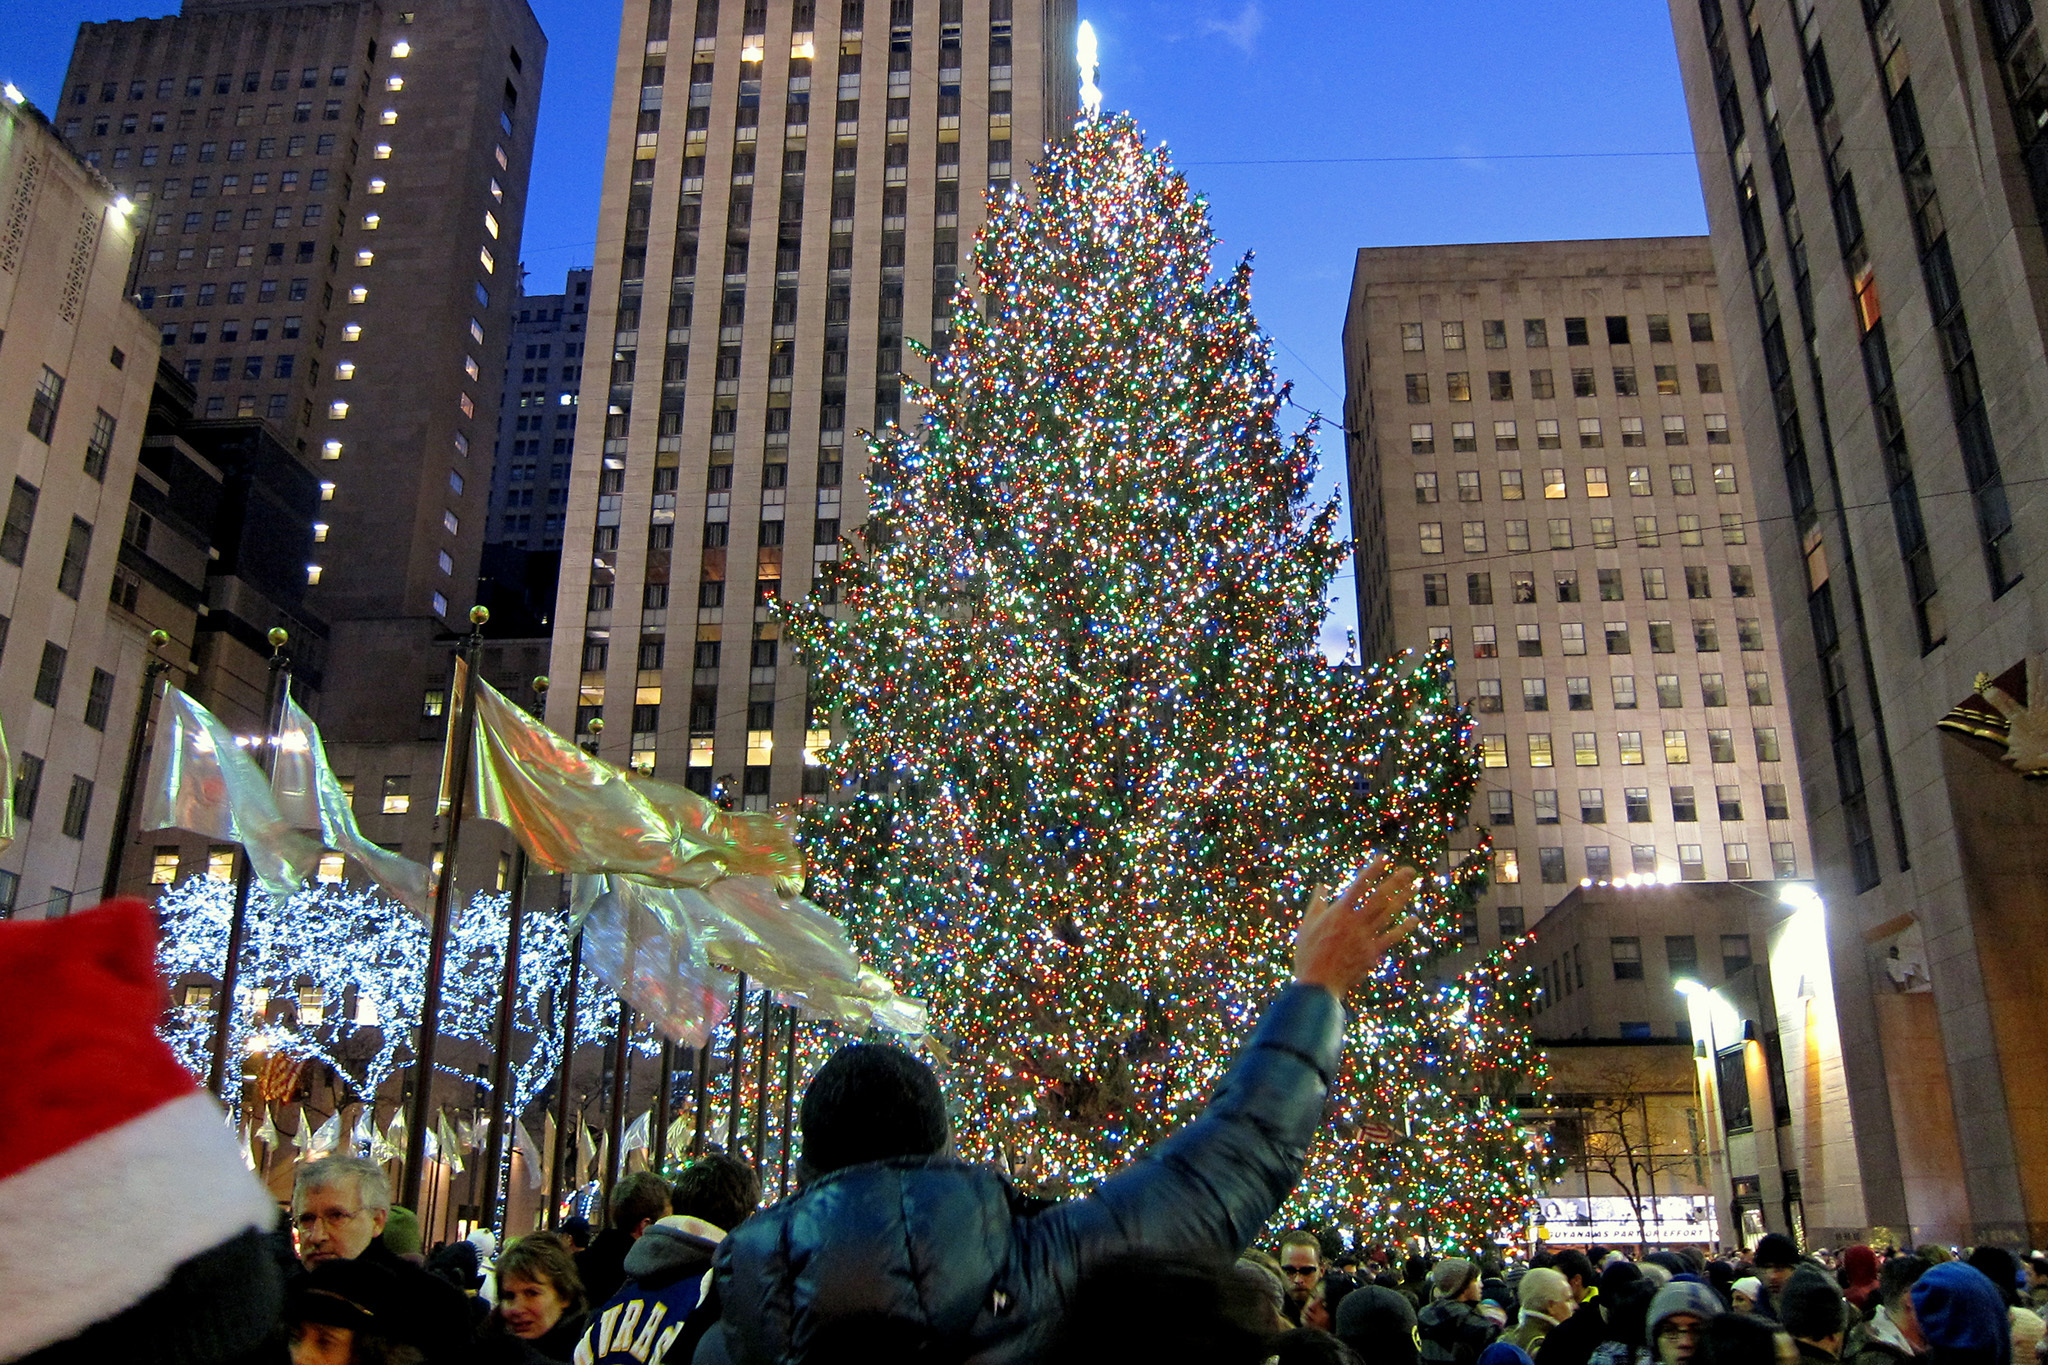 christmas in new york rockefeller center tree lighting guide rockefeller center tree lighting guide things to do